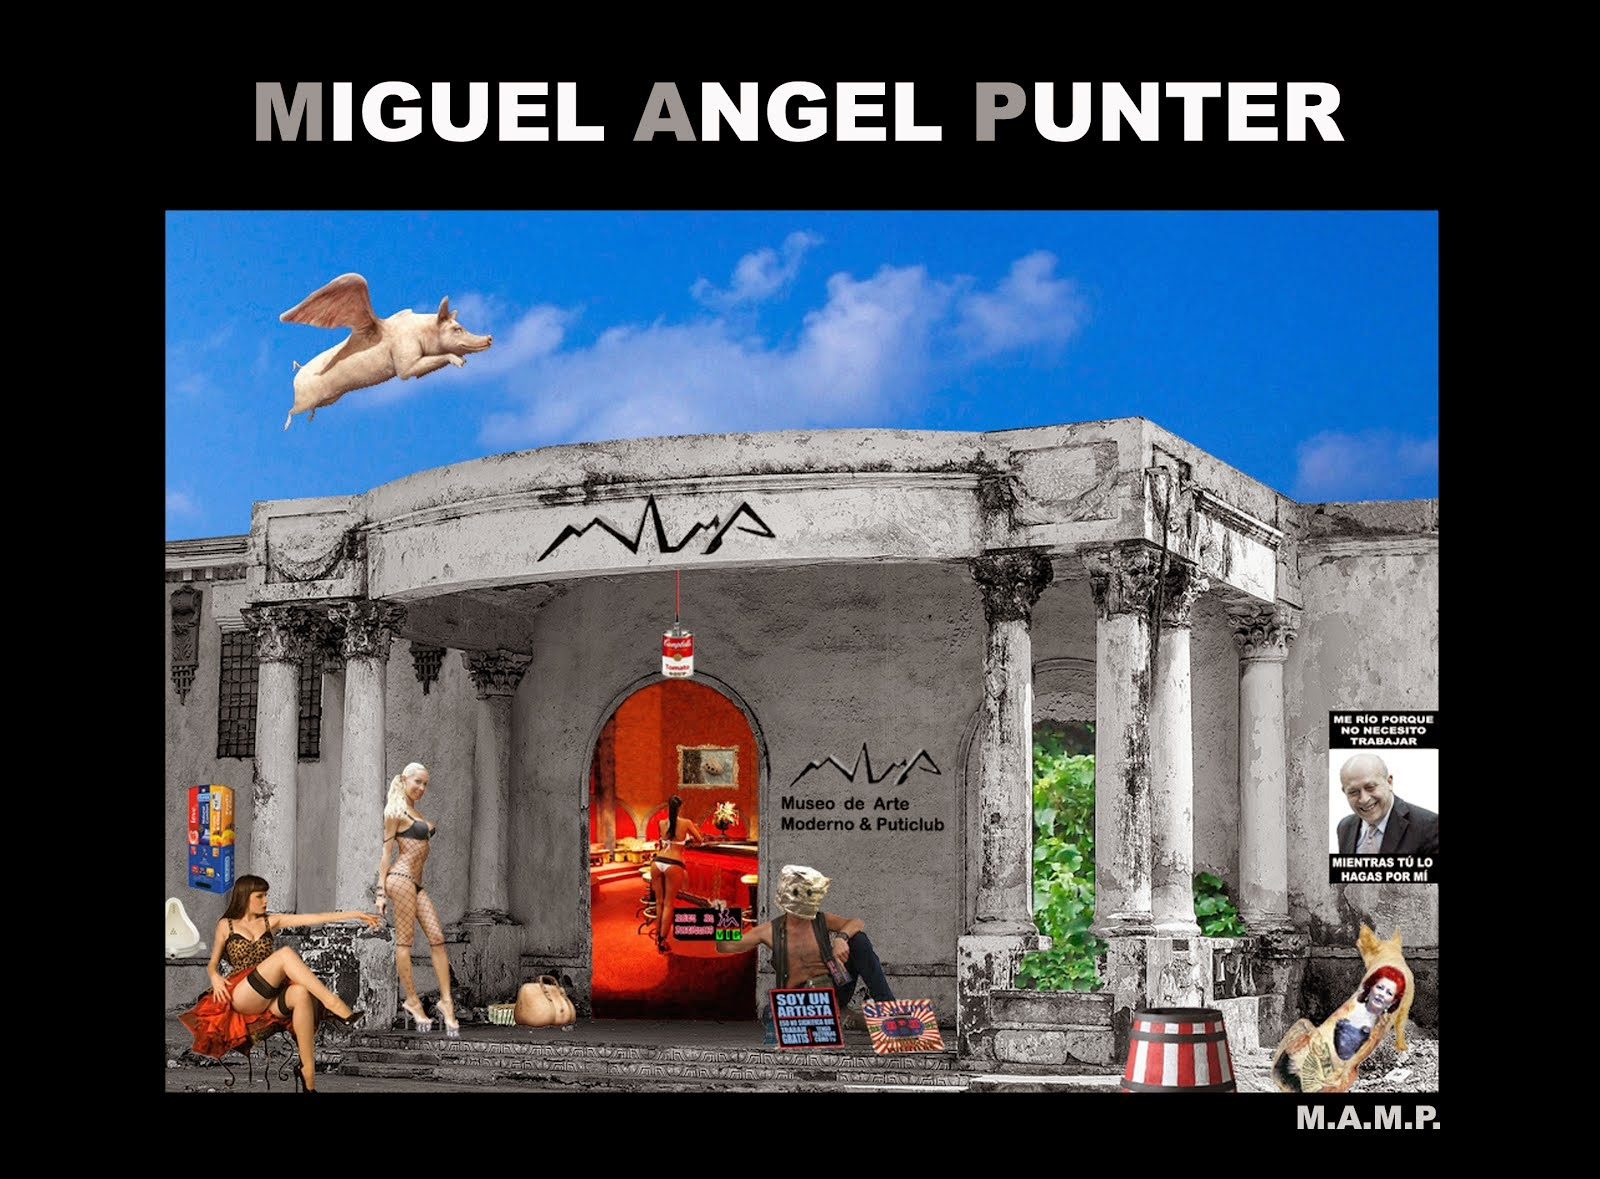 MIGUEL ANGEL PUNTER